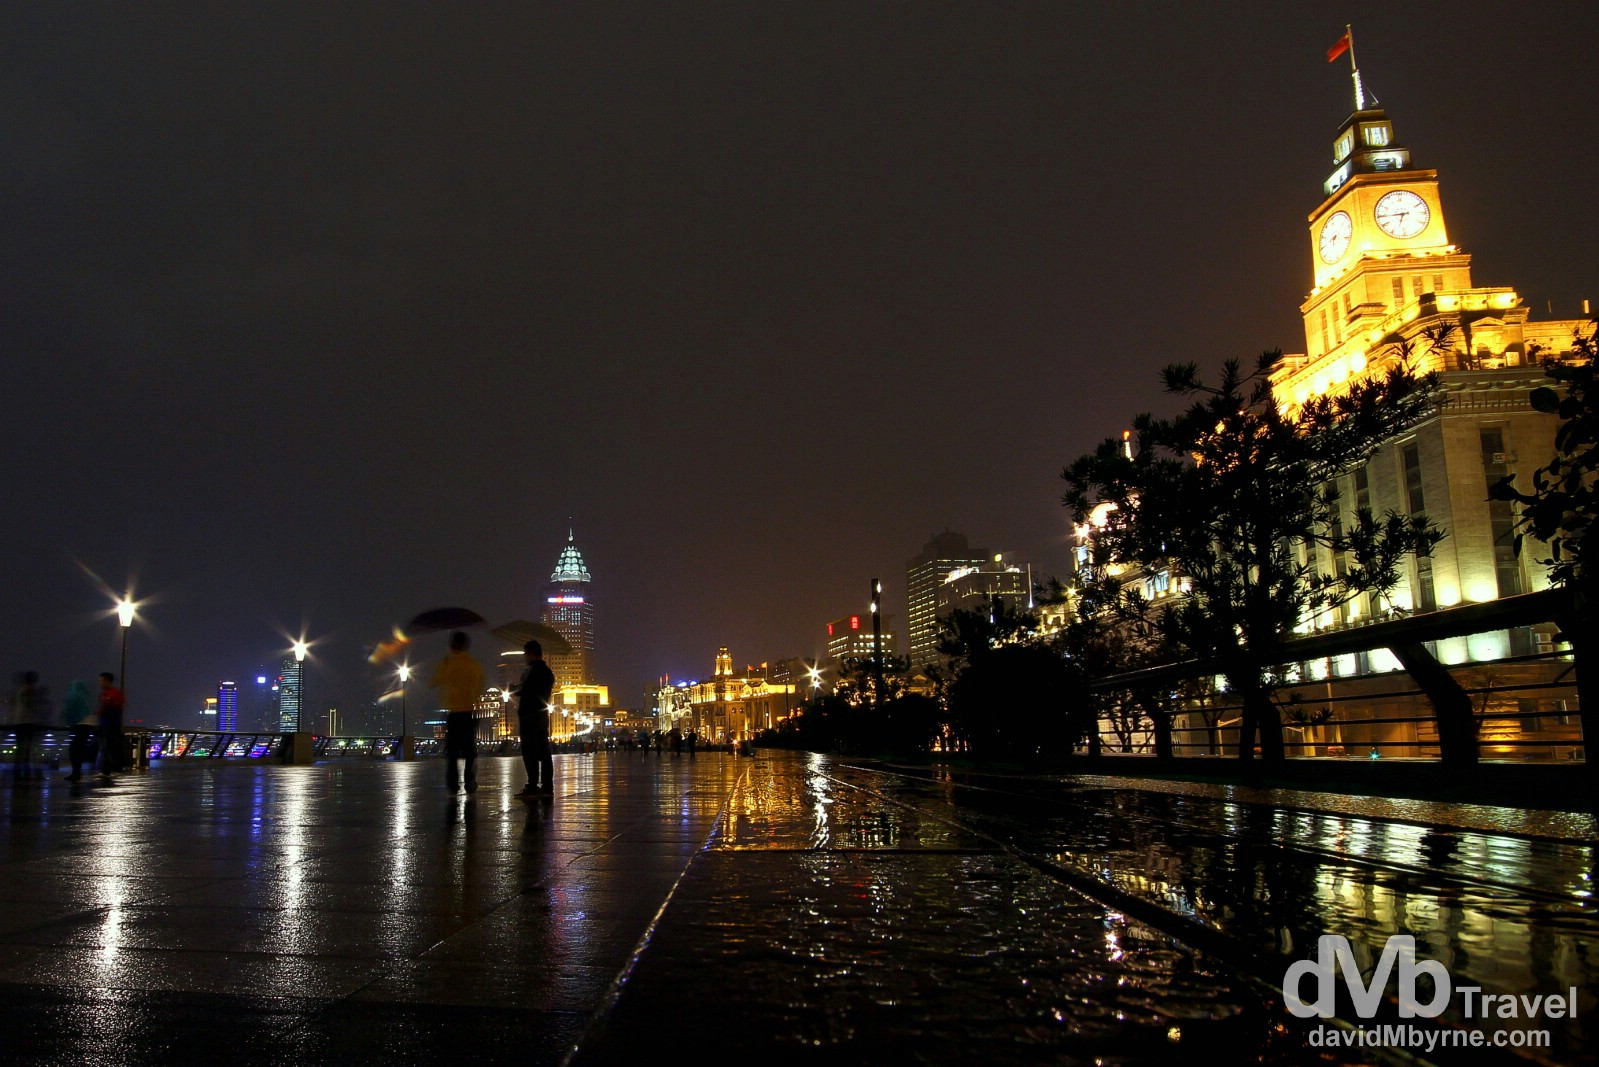 A rainy night on the Bund in Shanghai, China. October 22nd 2012.